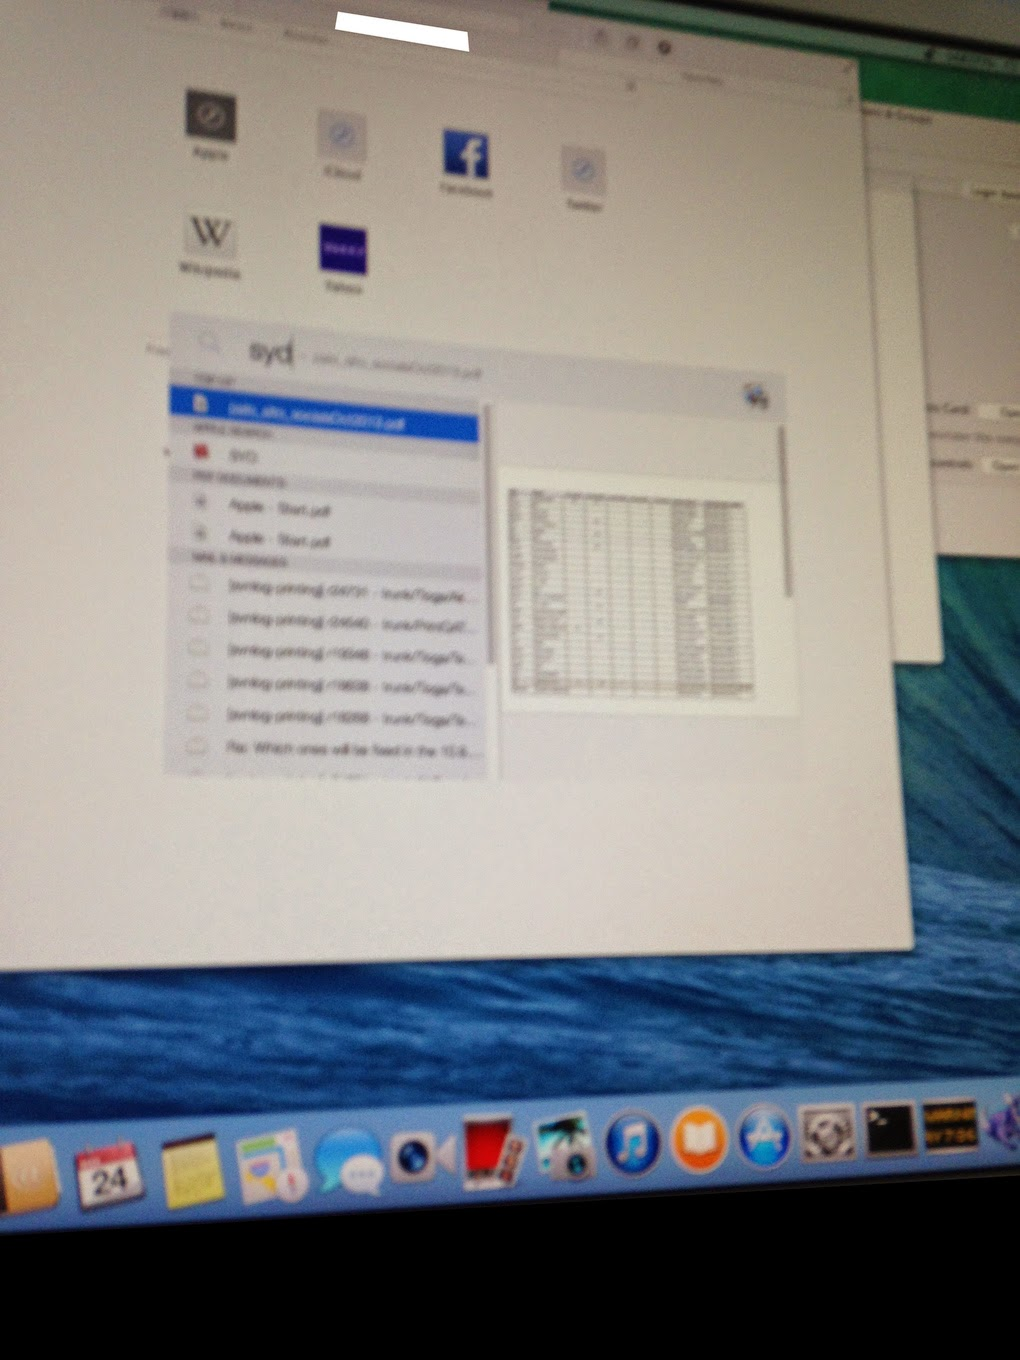 Mac OS X 10.10 Leak Image